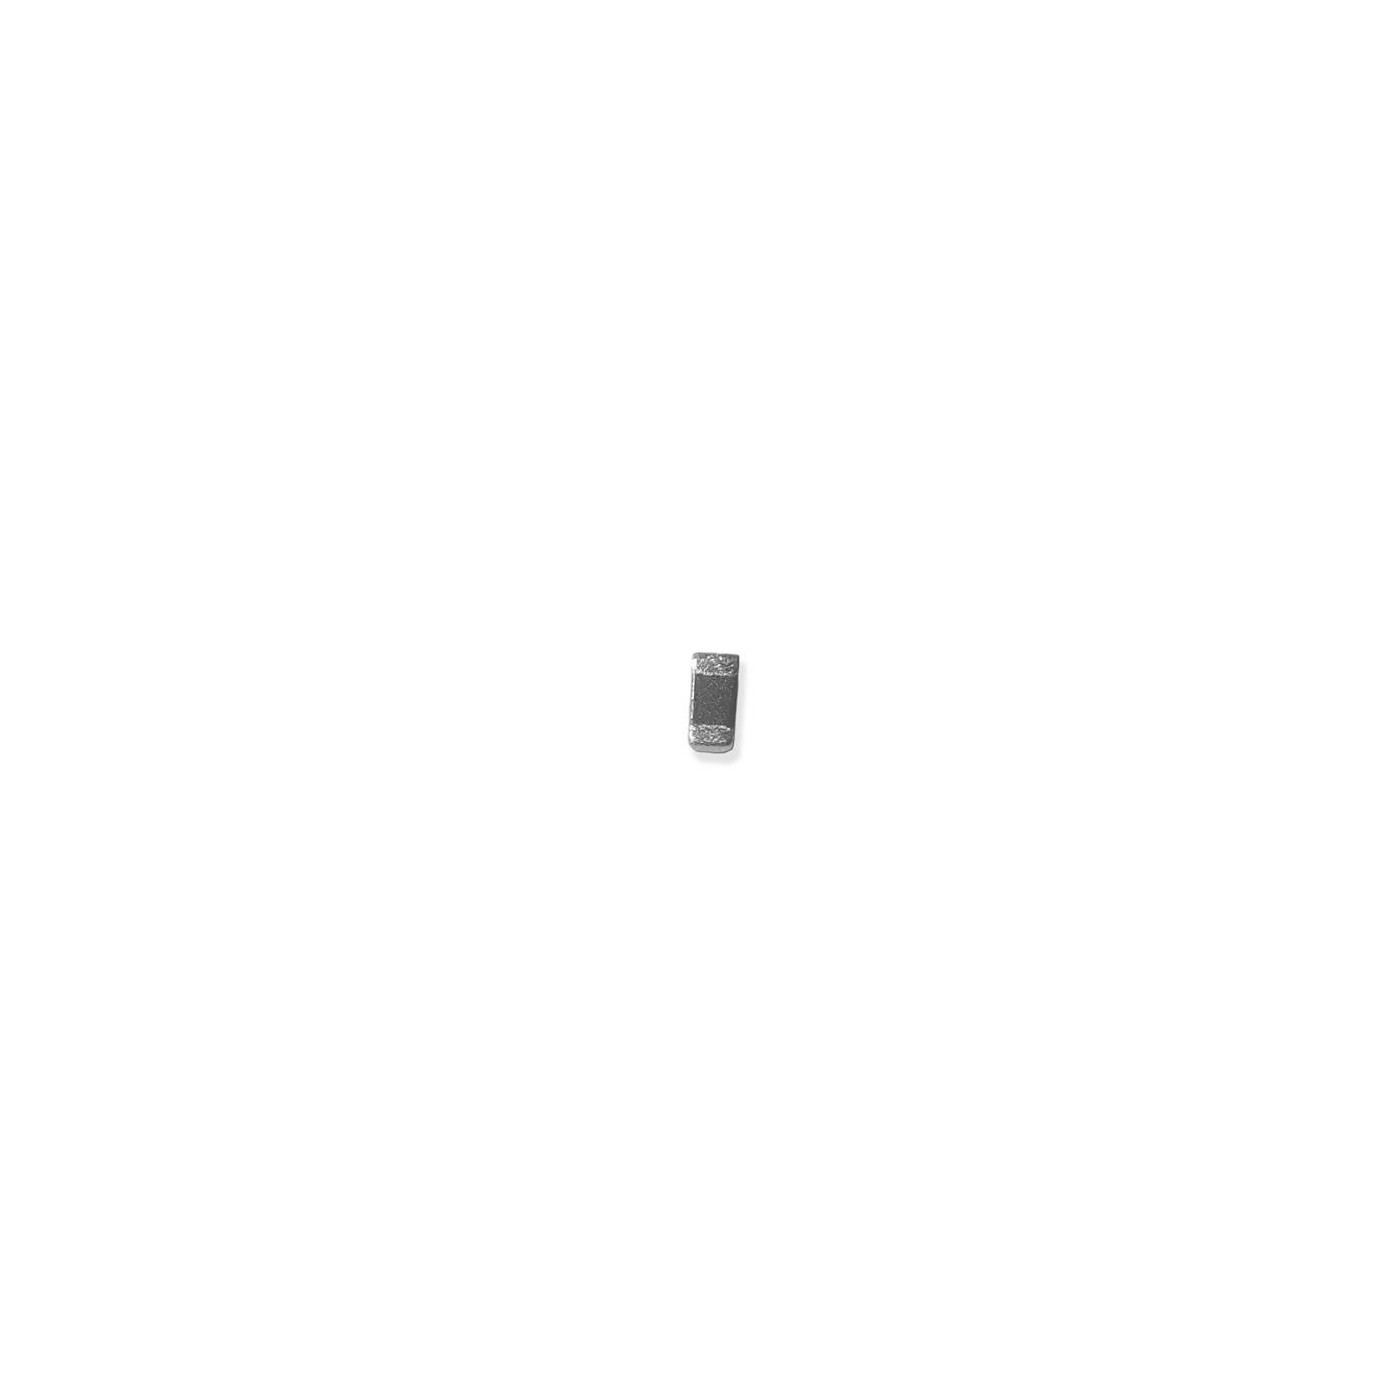 FL4211 Backlight smd filter for iPhone 6s